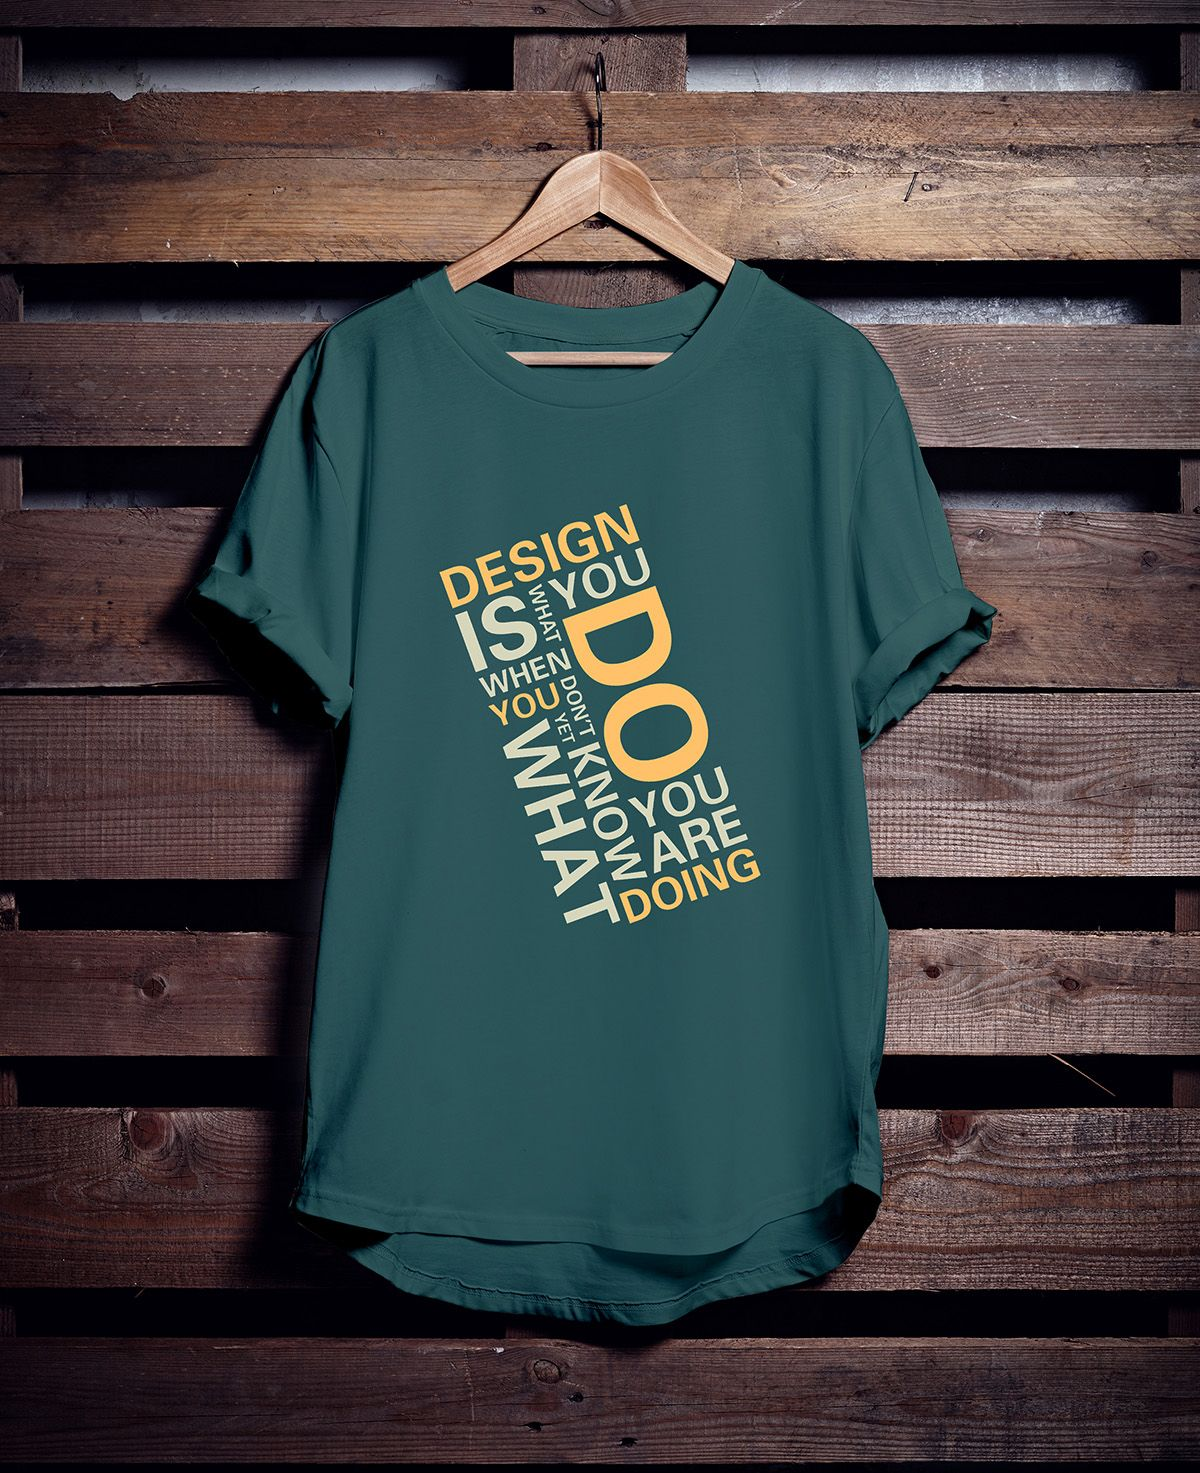 Download Free Hanging T Shirt Mockup Graphic Google Tasty Graphic Designs Collection Shirt Mockup Clothing Mockup Tshirt Mockup